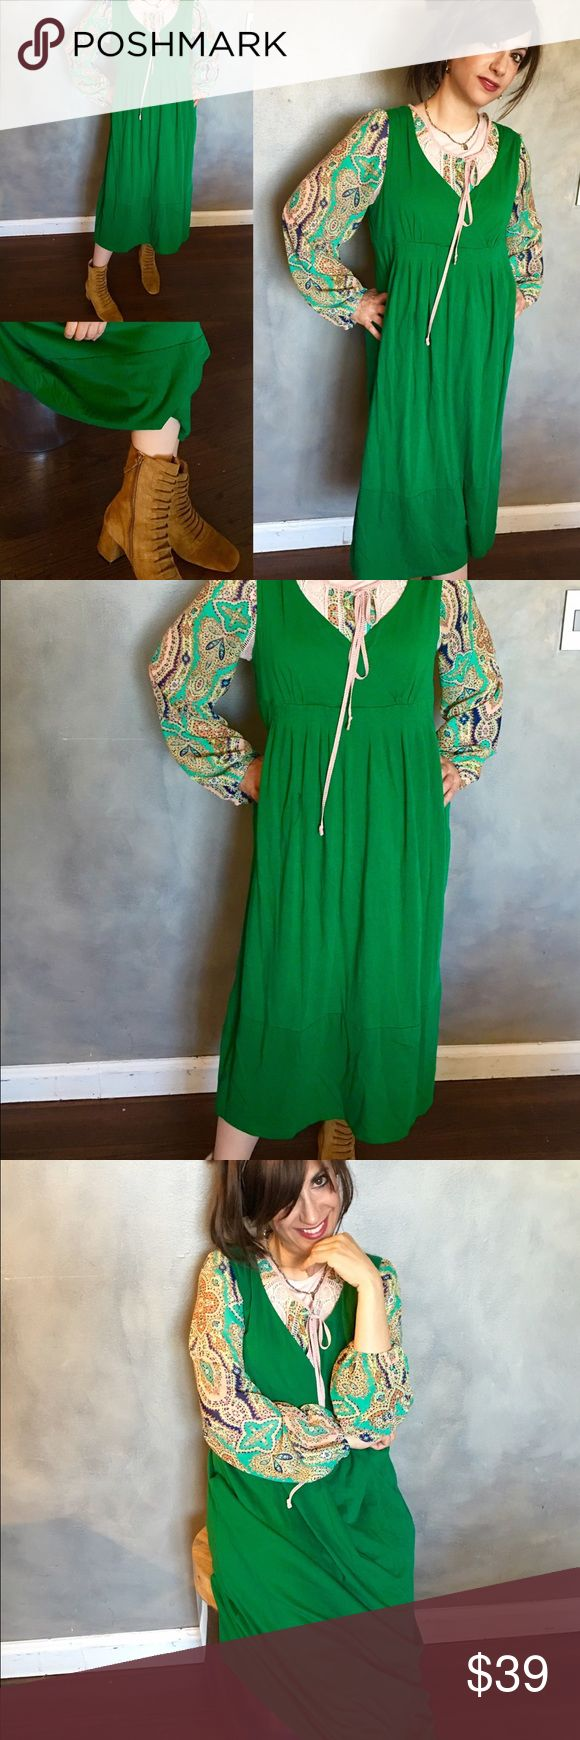 """HOST Pick Loft green midi dress Host Pick 🌷🍃🌷🍃🌷A beautiful casual loft midi dress. Like new with no faults. Worn very few times in perfect condition. I live it but it's too big on me now. 43"""" in length from shoulder. Size L. Feels very soft. LOFT Dresses Midi"""